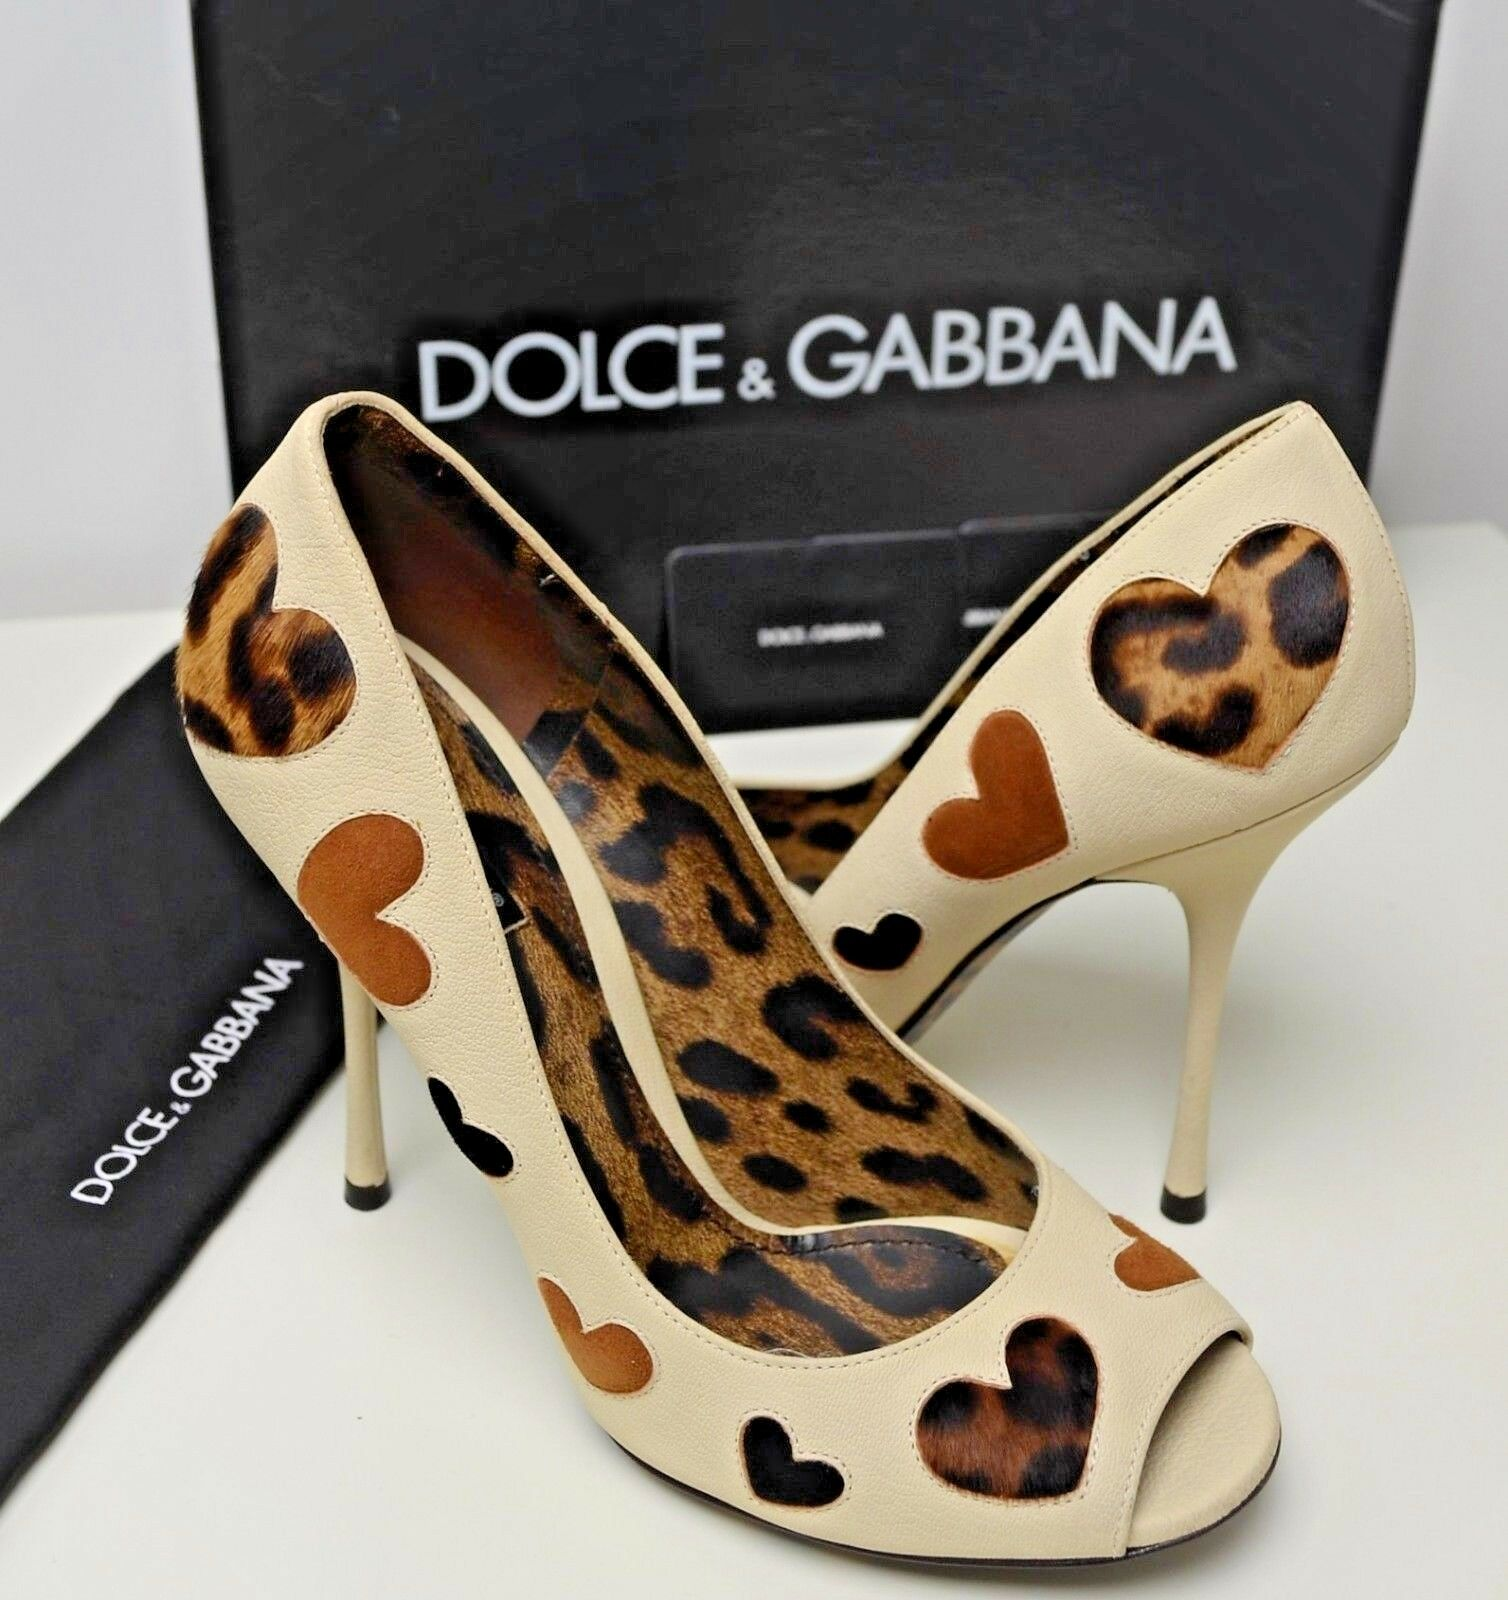 Dolce & Suede Gabbana Leopard Pony Hair Suede & Hearts Heels Pattern Shoes White Beige 902910